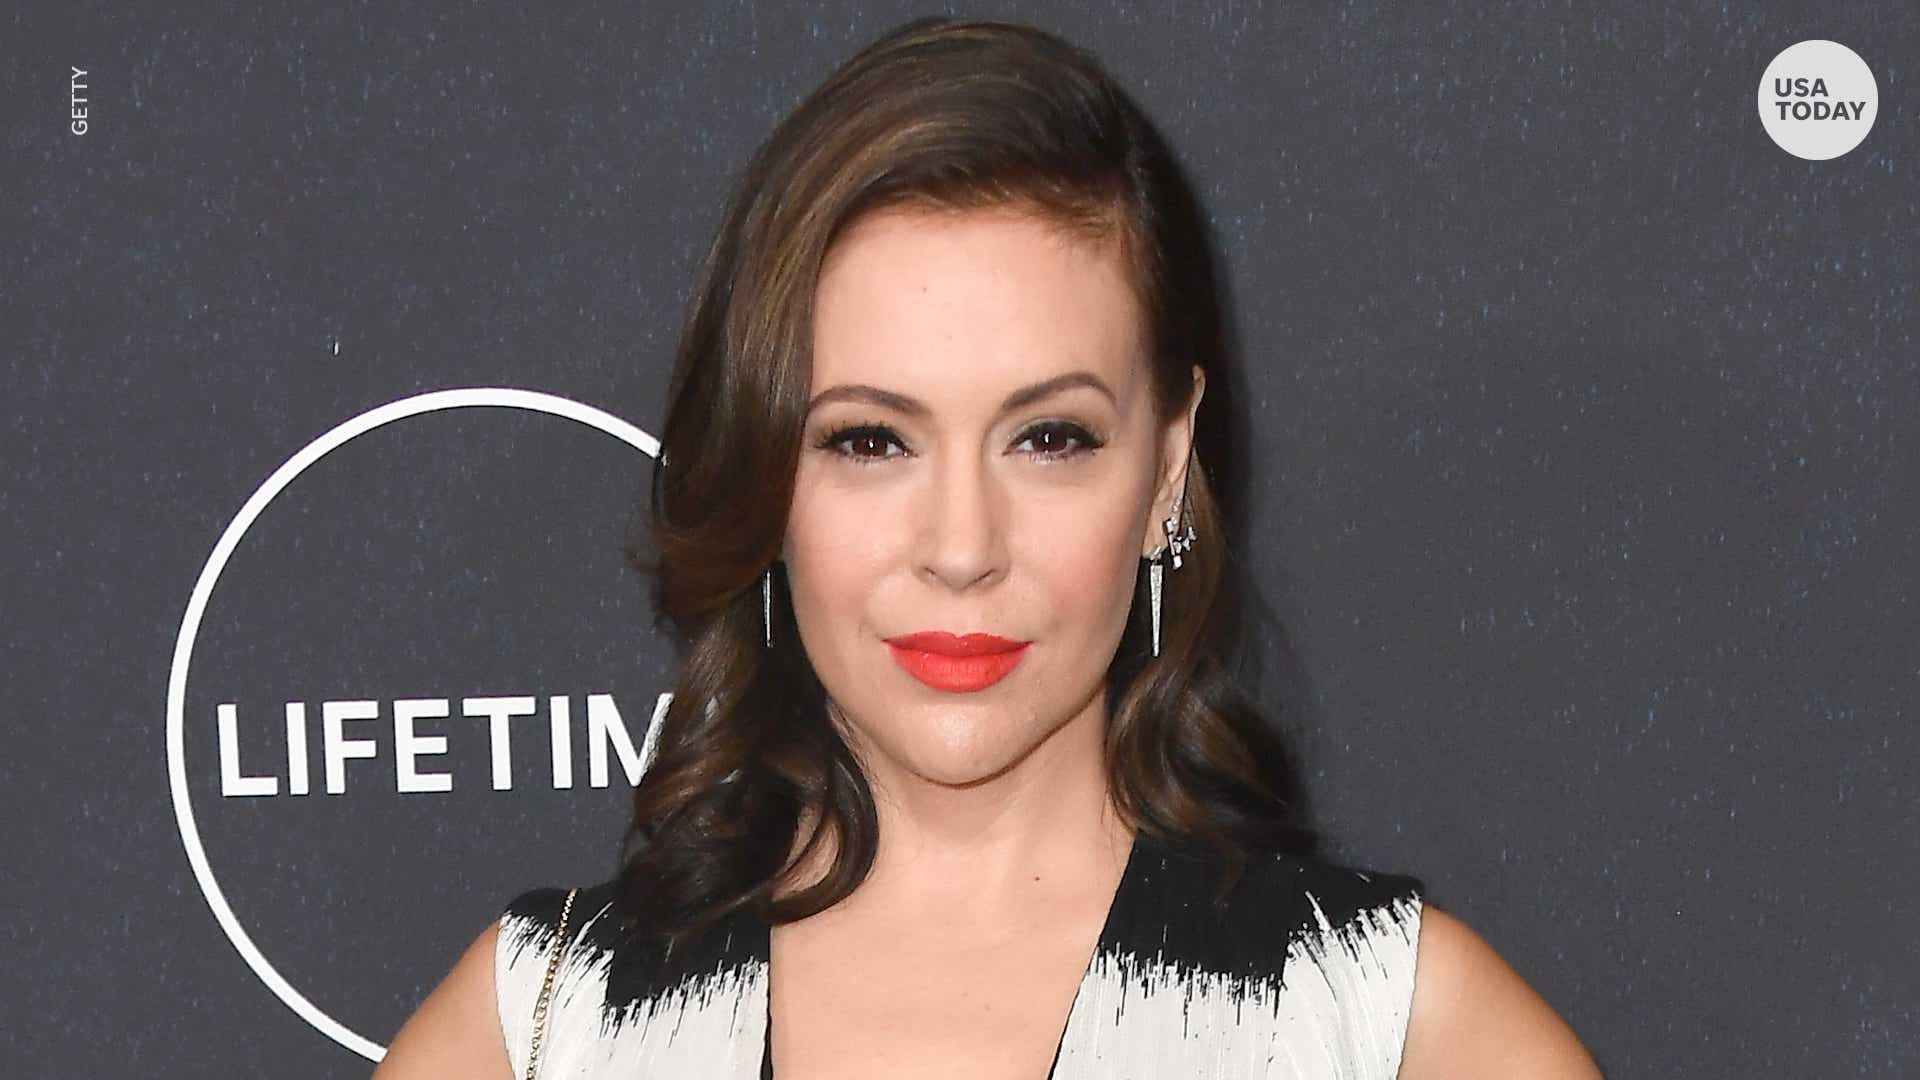 Alyssa Milano 2008 alyssa milano reveals she had two abortions within months in